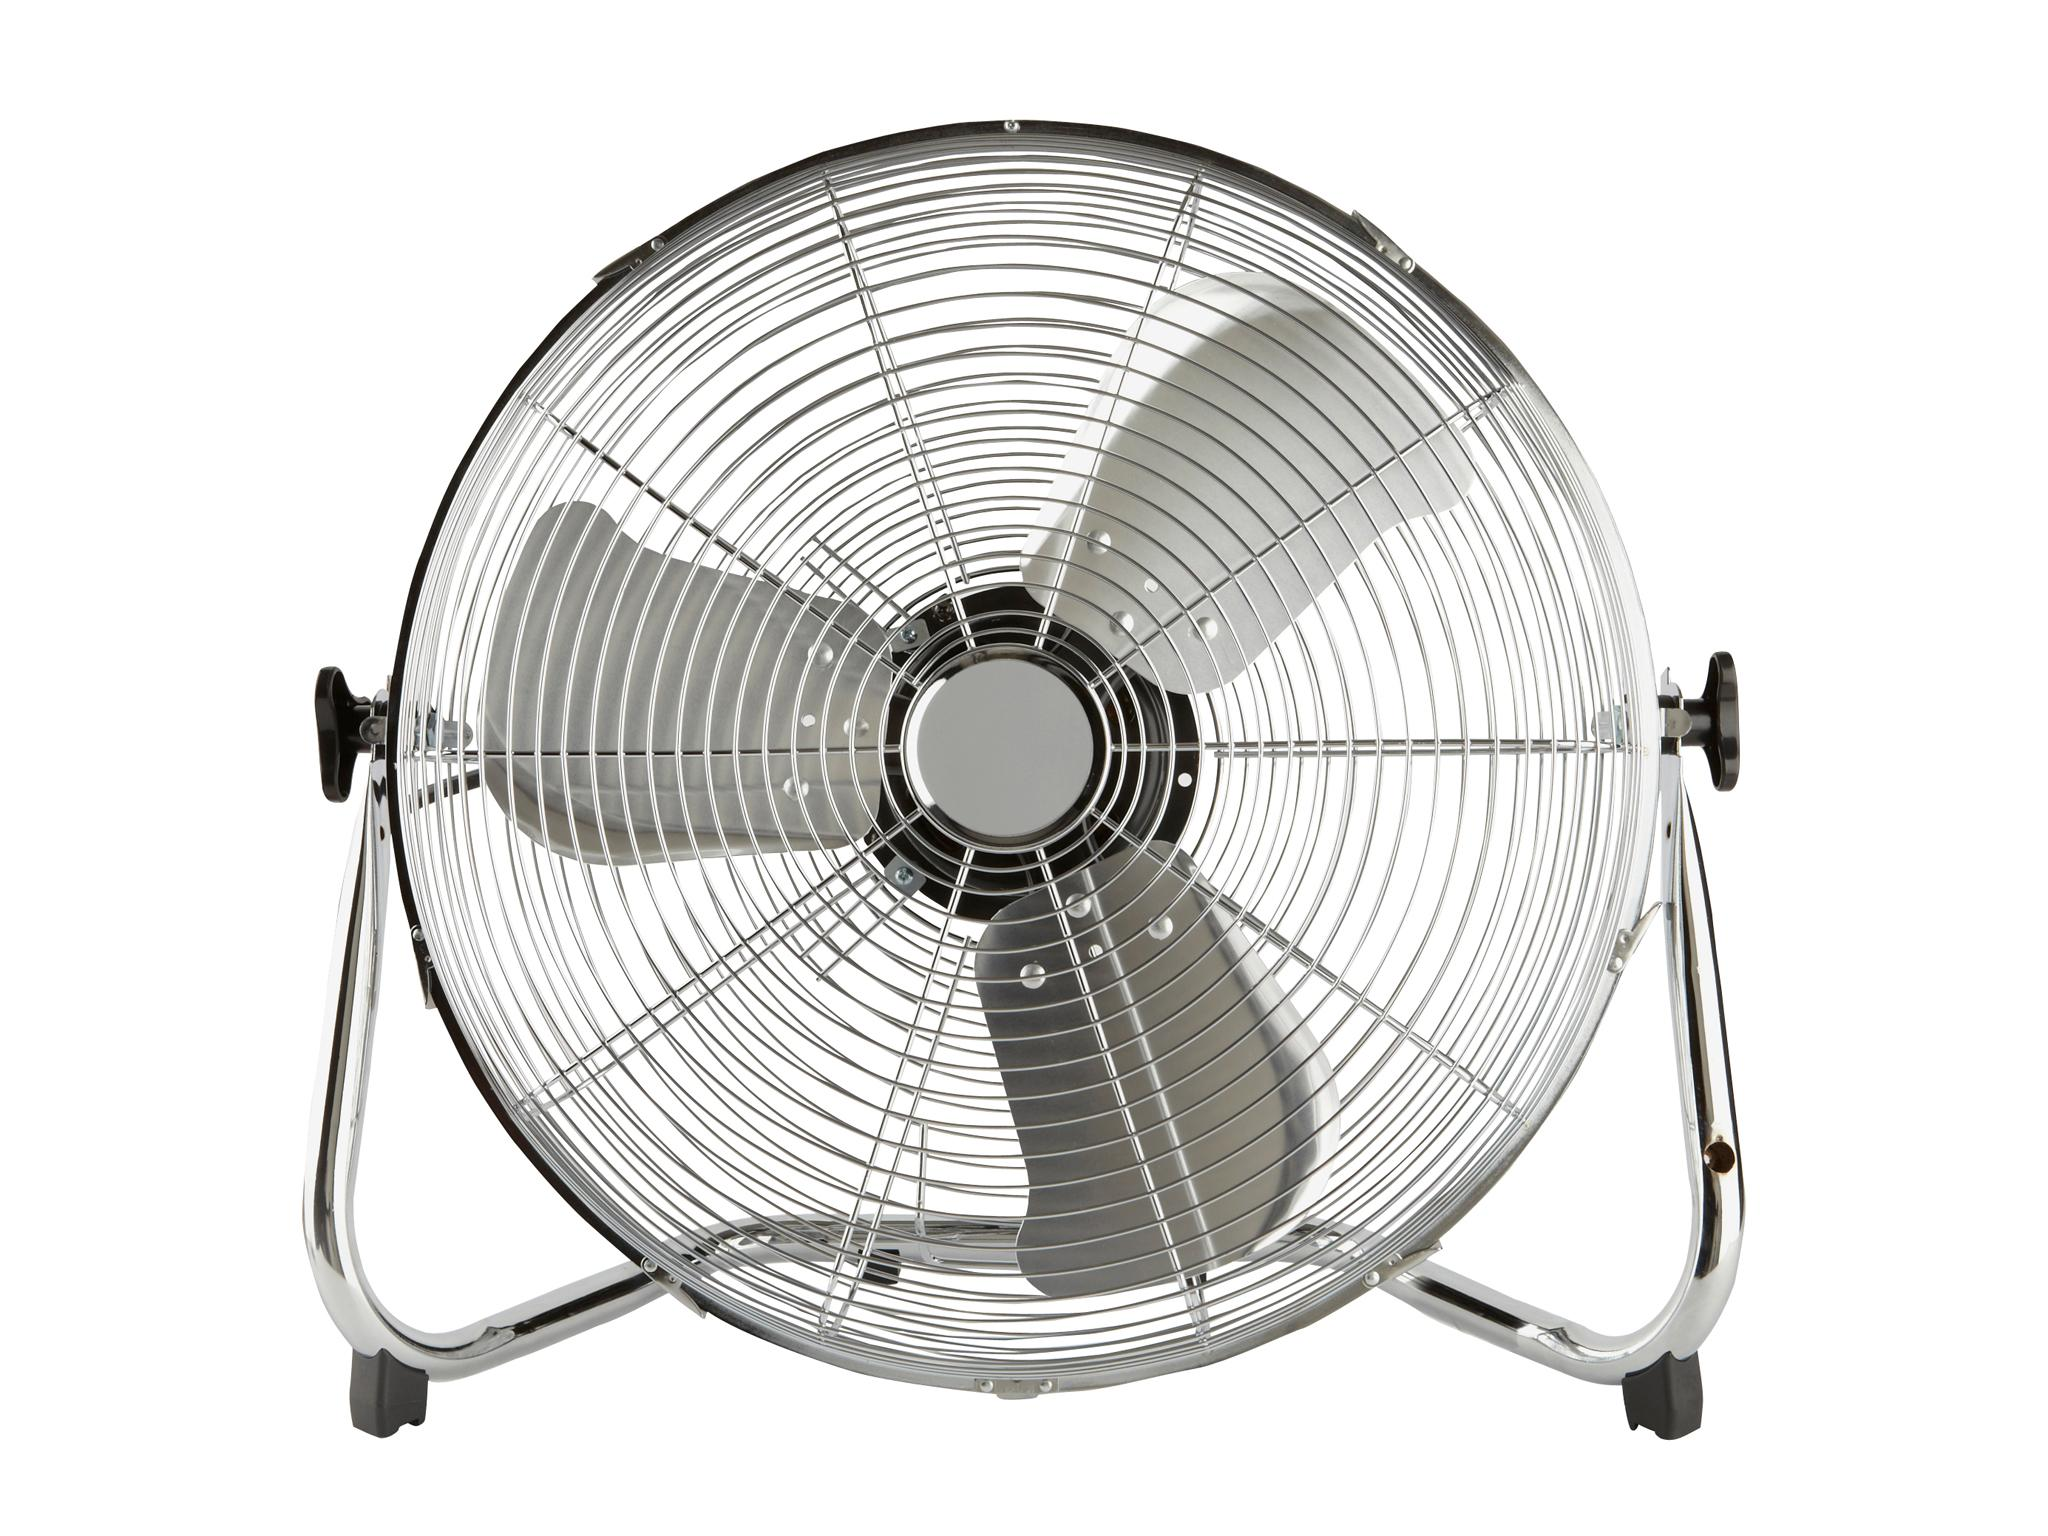 10 Best Cooling Fans The Independent How To Control An Electric Fan With A Factory Thermoswitch Apps Theres